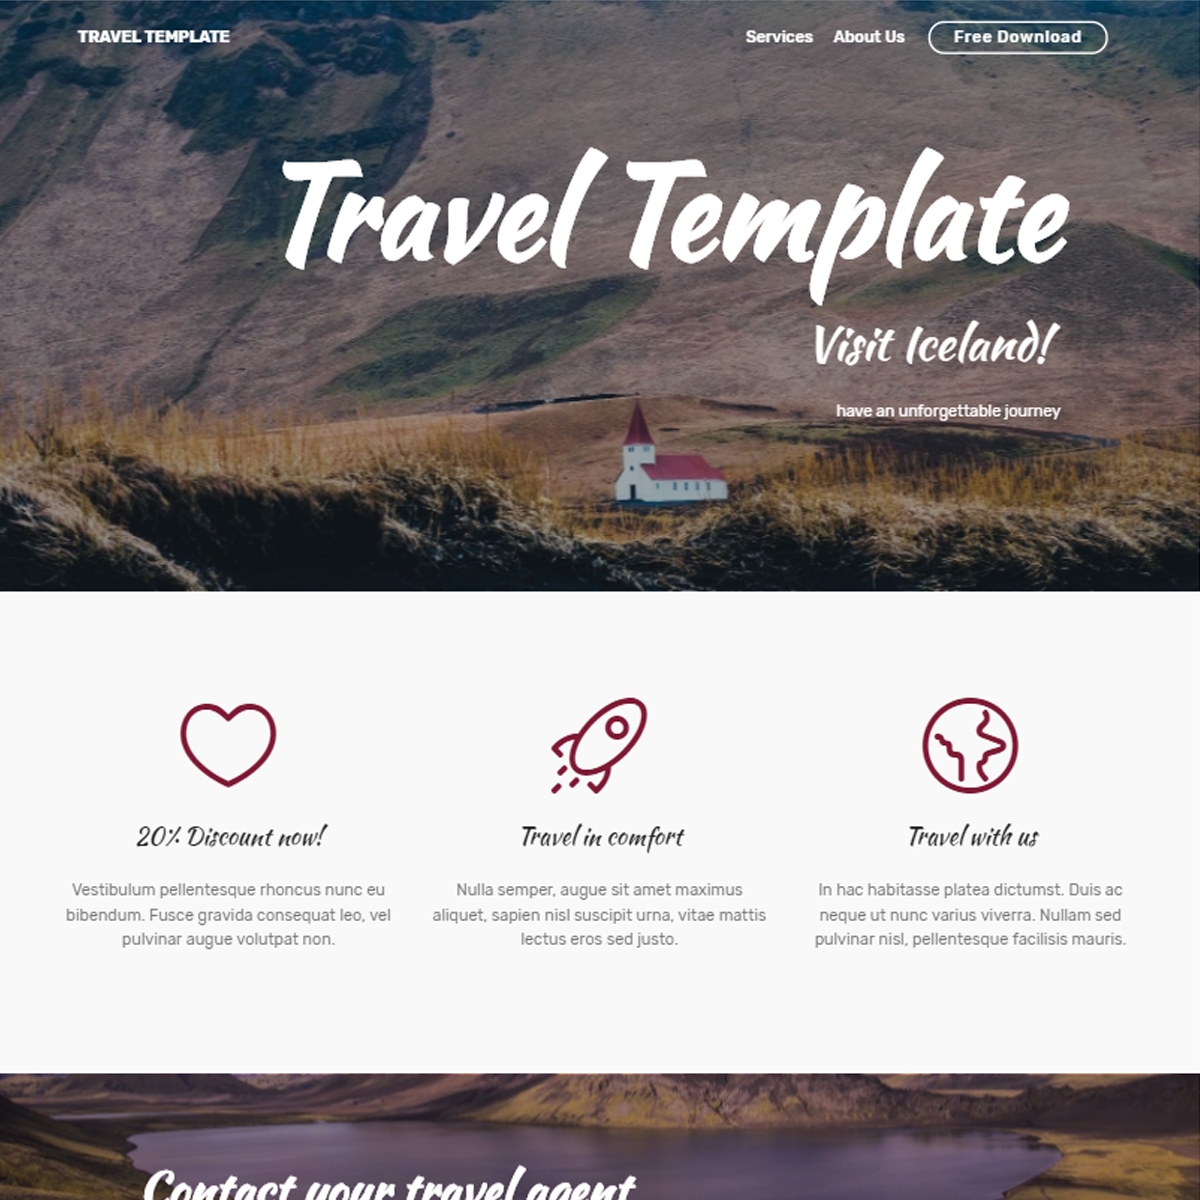 free photo templates download